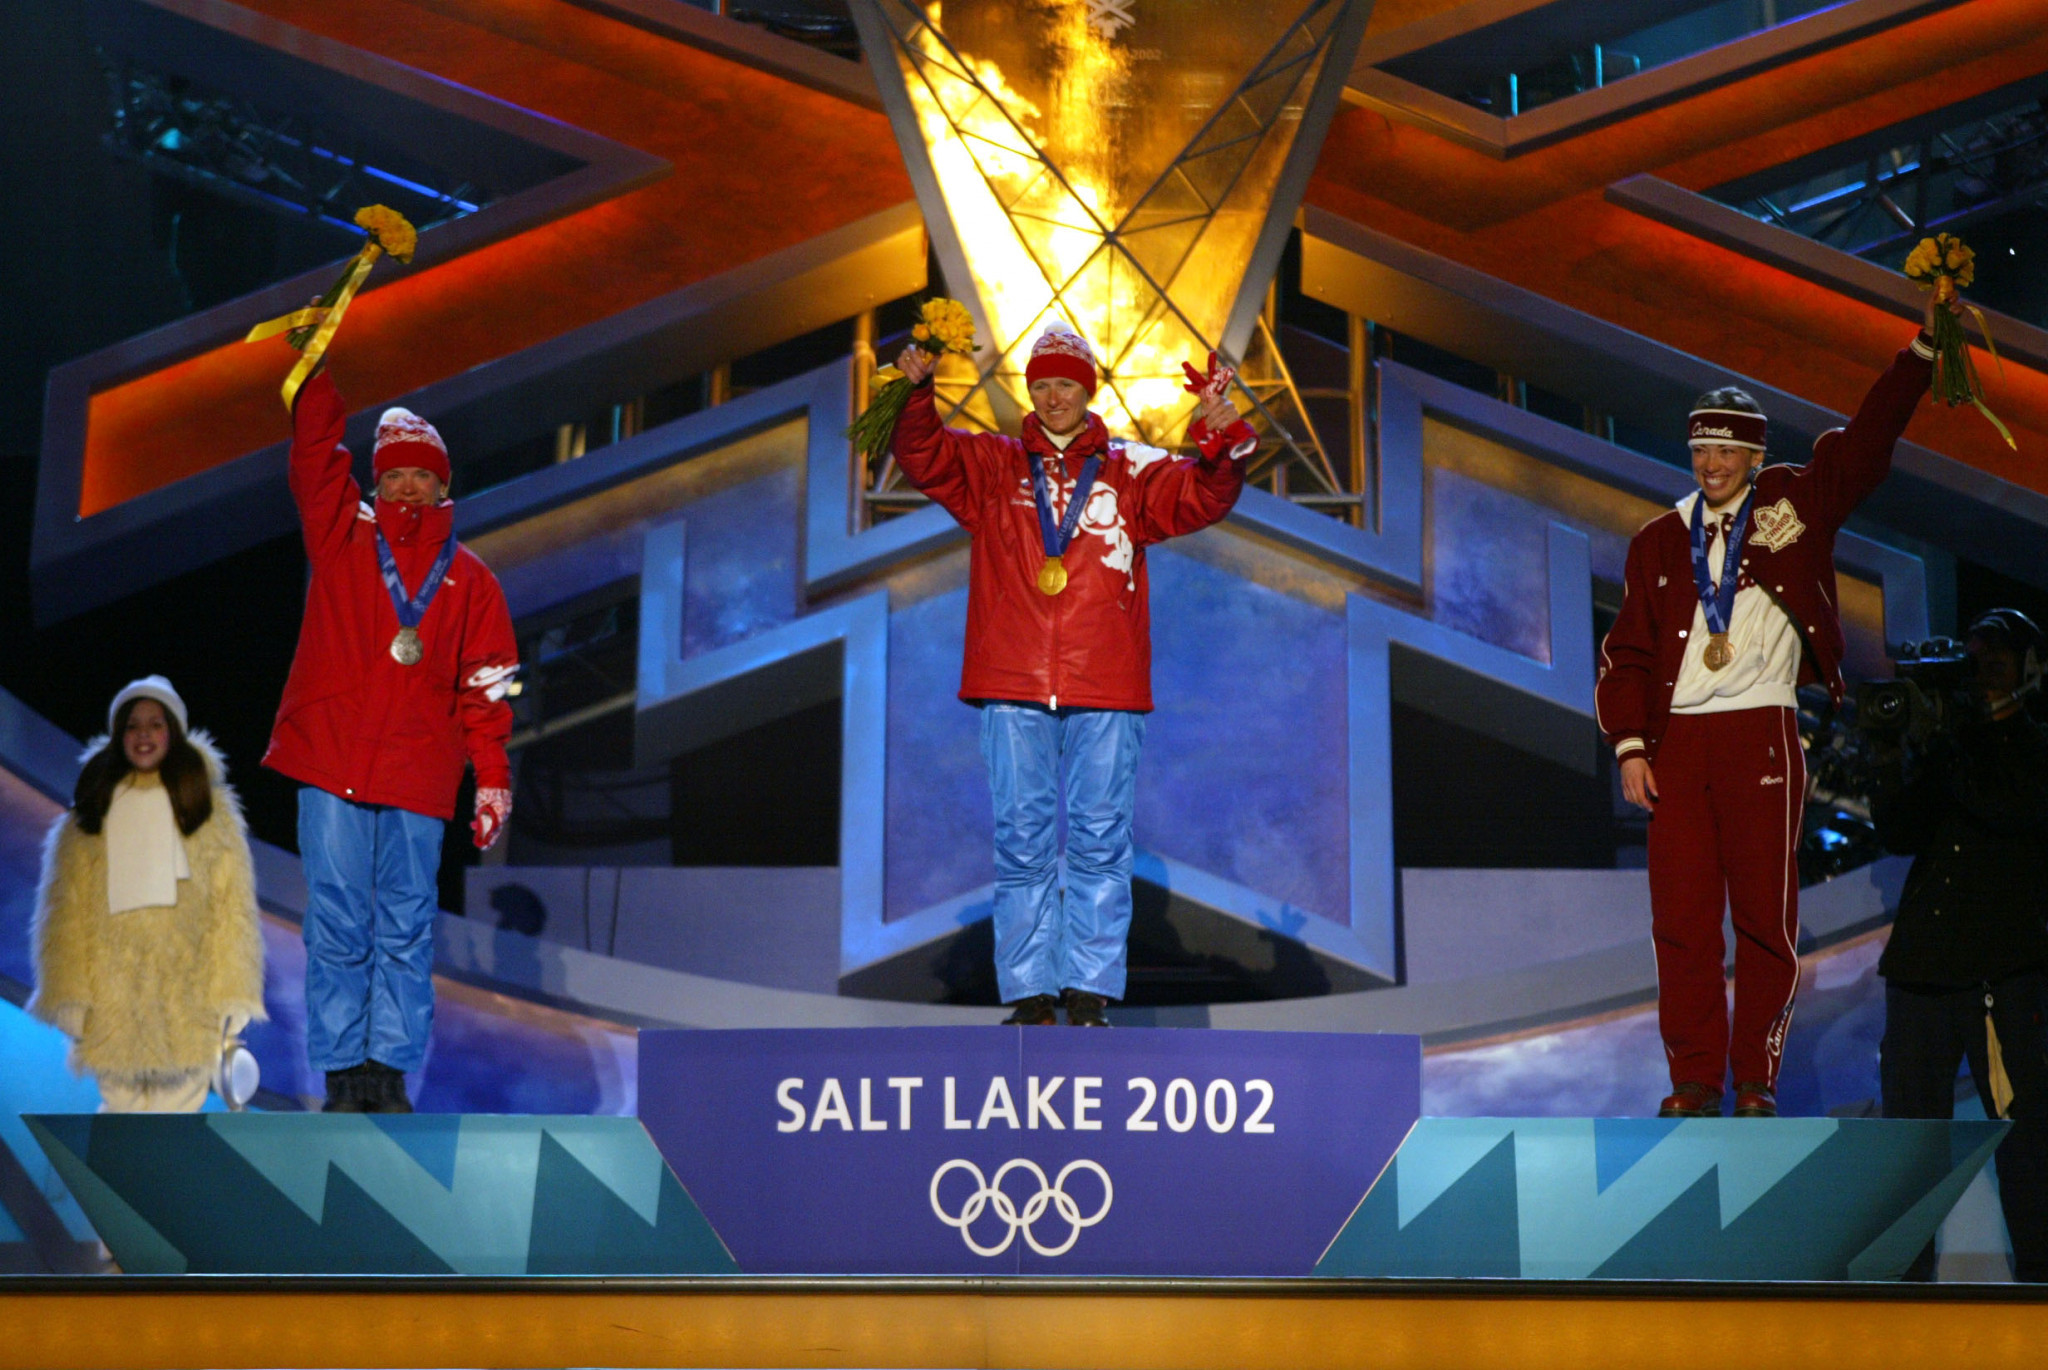 Salt Lake City last hosted the Winter Olympic Games in 2002 ©Getty Images